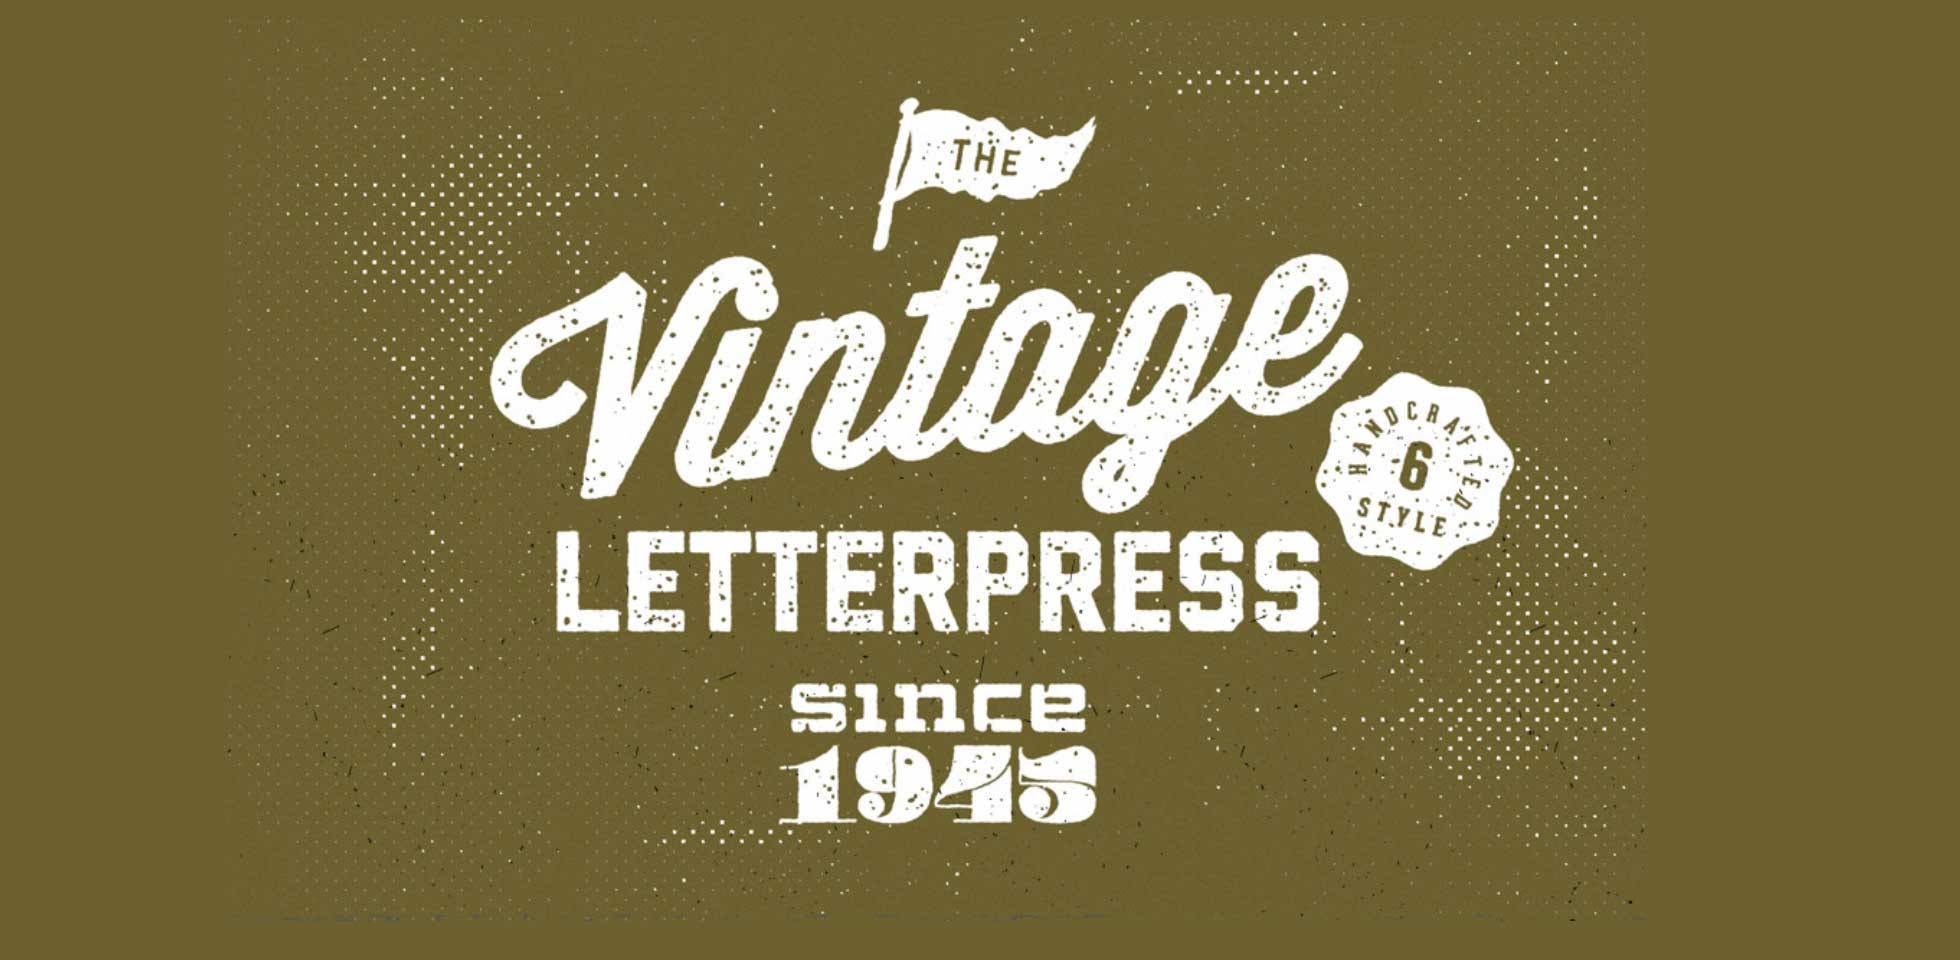 Free Download: Vintage Letterpress Text Effects